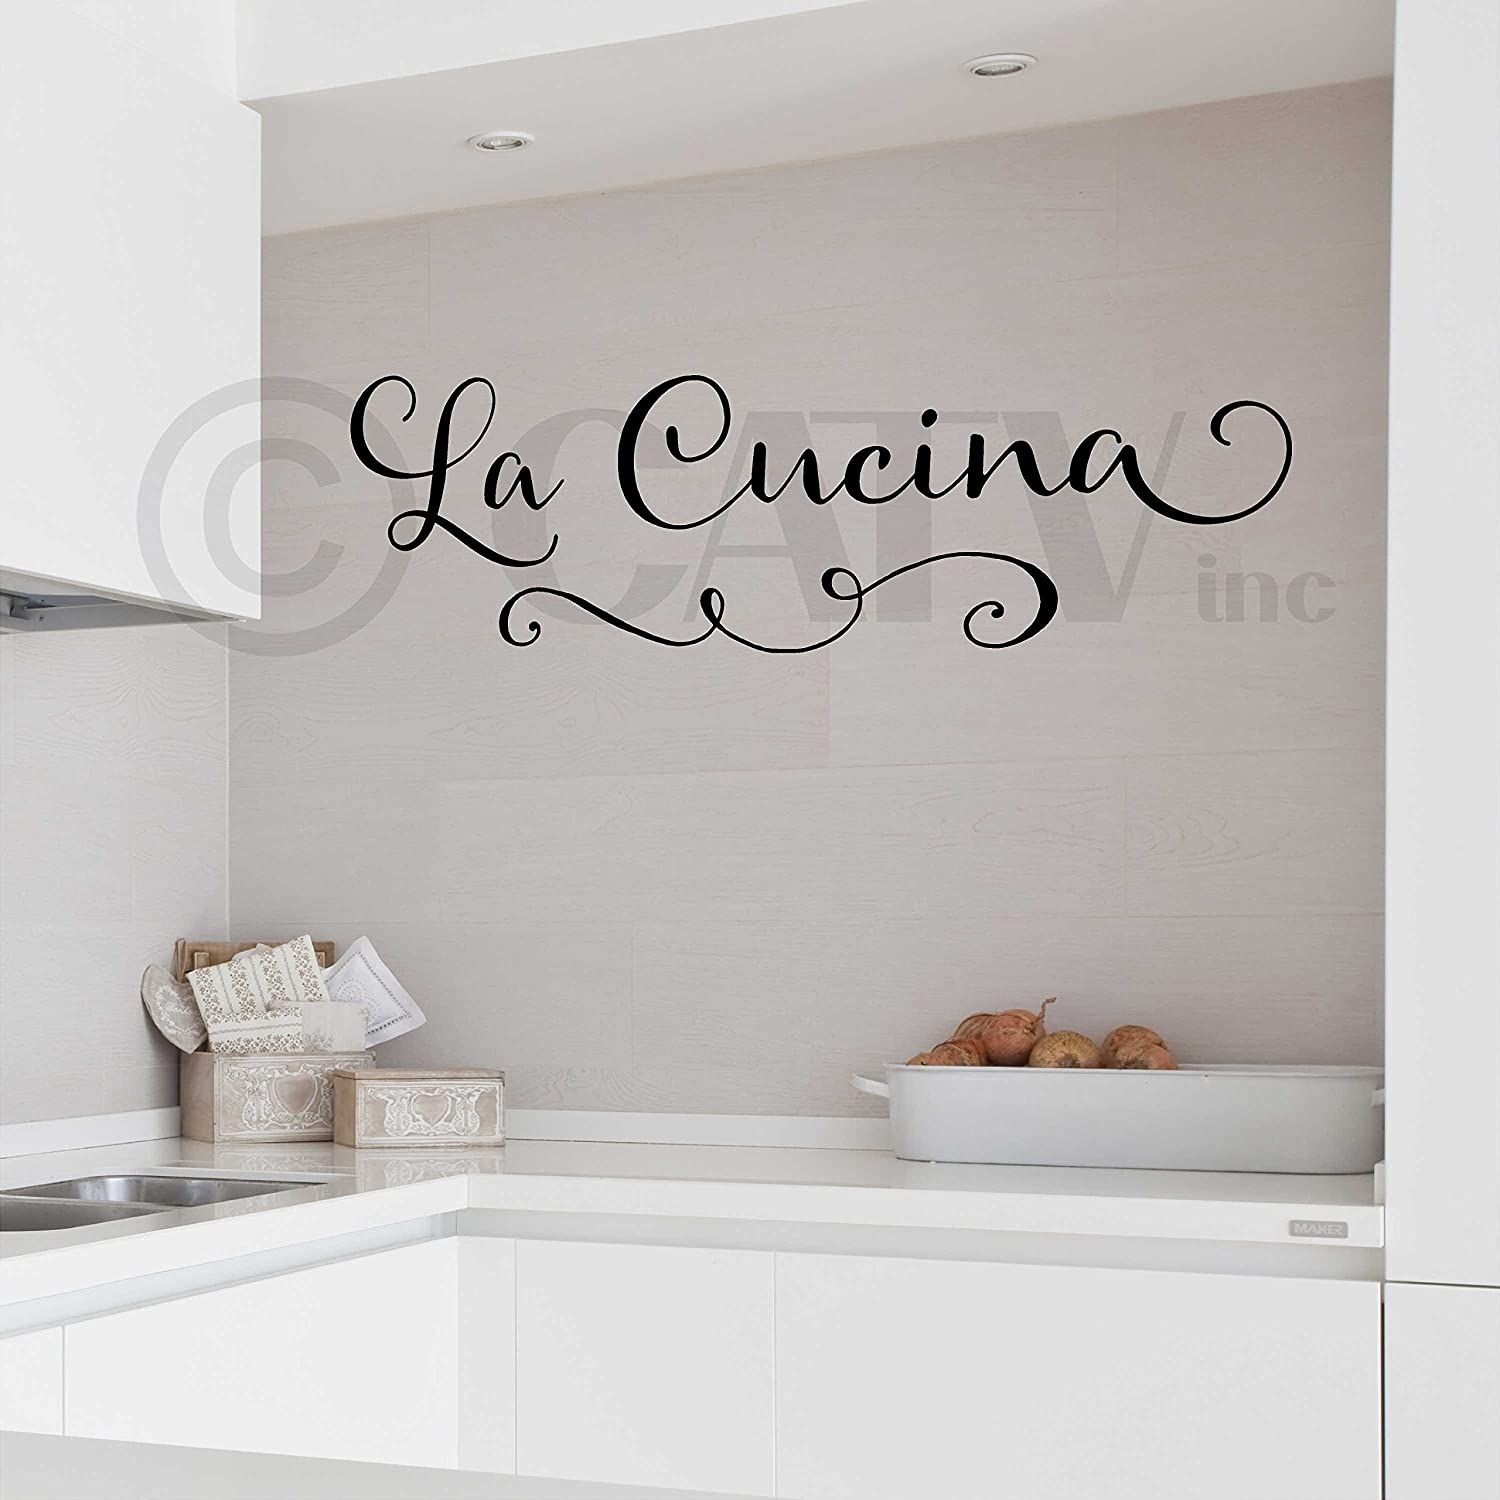 delicate la cucina (the kitchen) wall saying vinyl lettering ... - Sticker Cucina